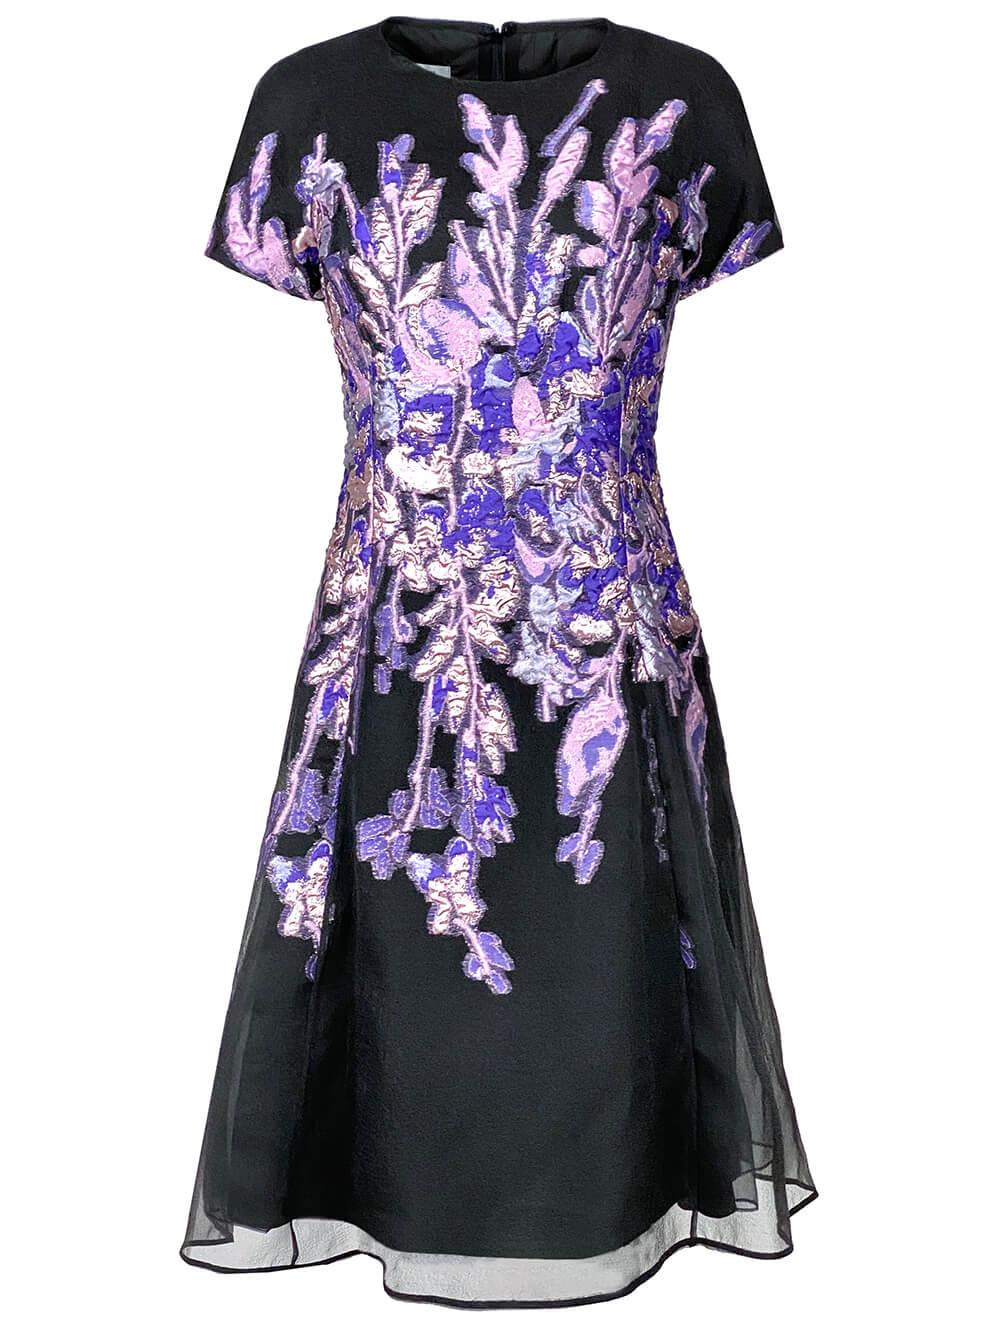 Floral Jacquard Fit And Flare Dress Item # 217223